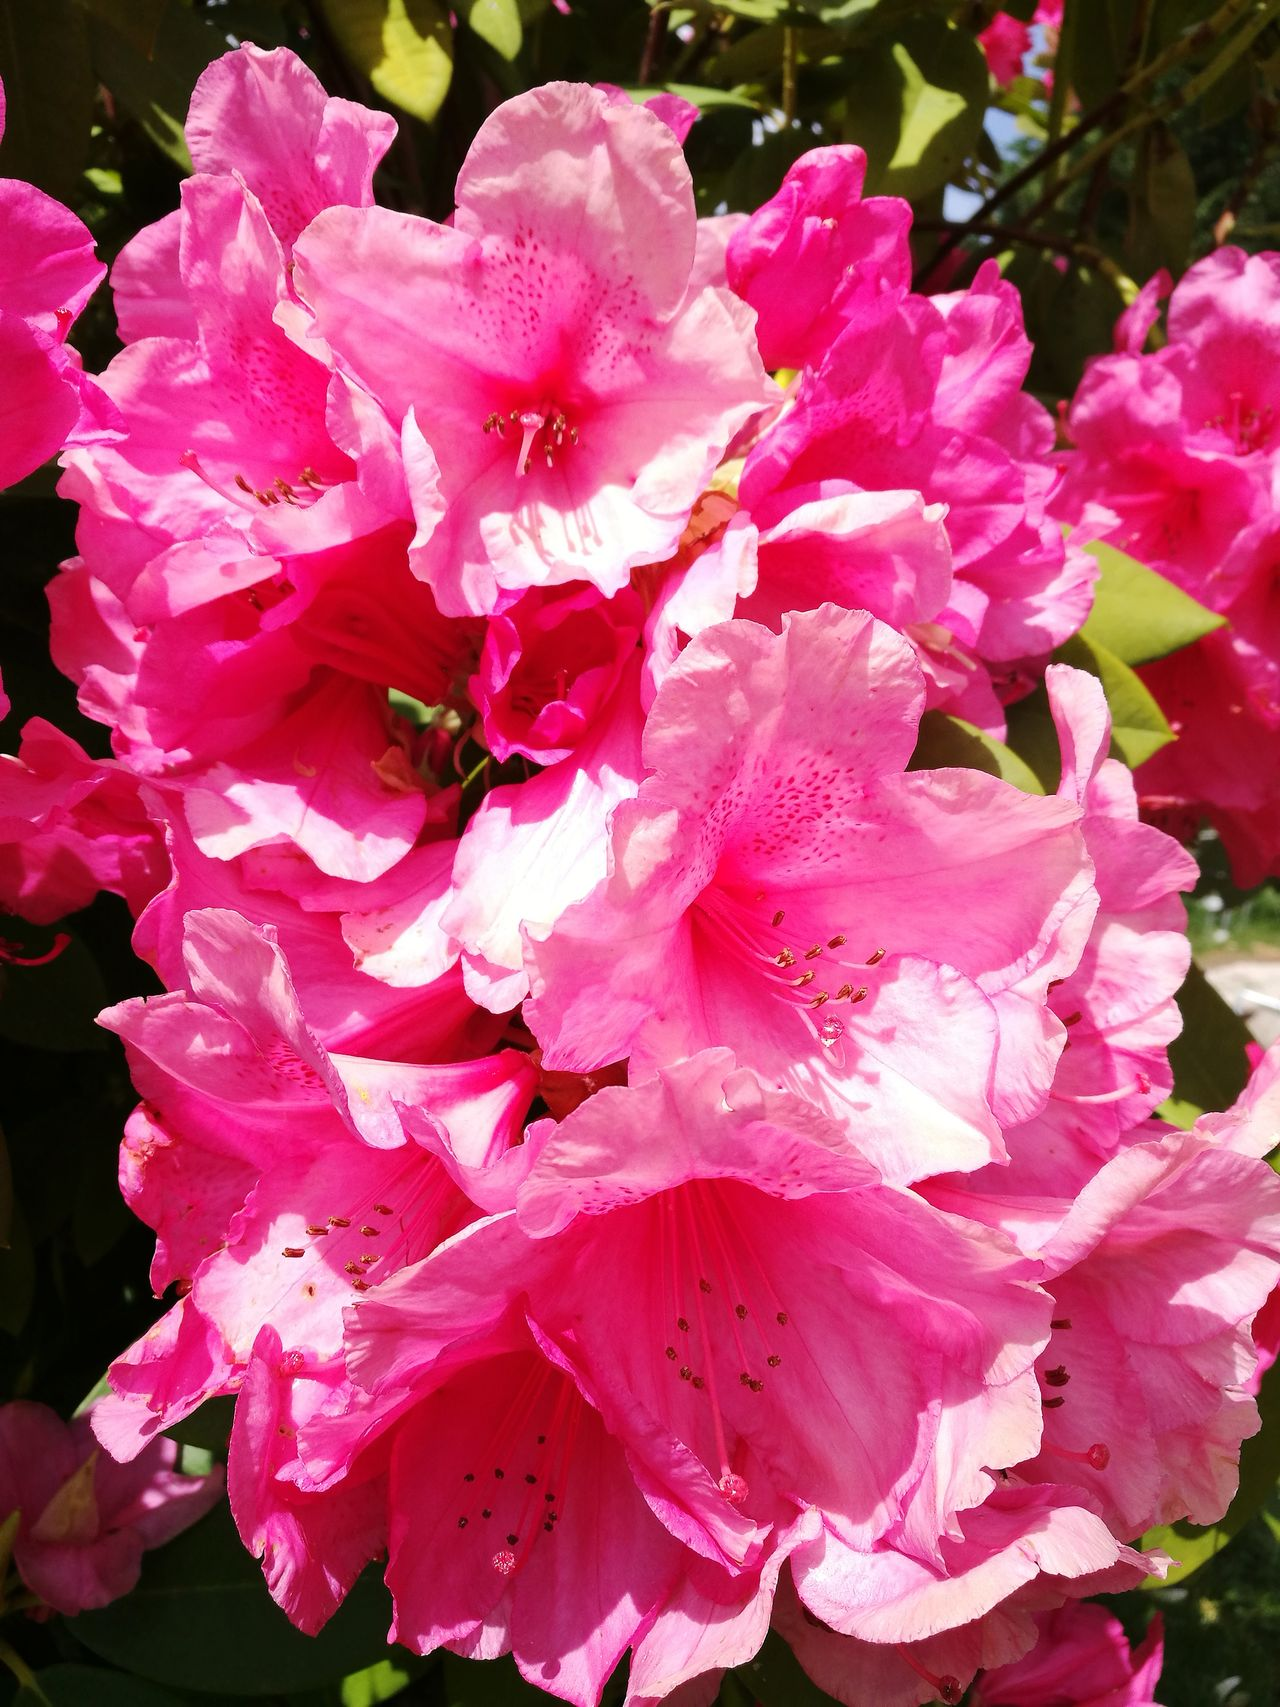 Rodho Flower Pink Color Petal Nature Fragility Beauty In Nature No People Flower Head Plant Growth Freshness Peony  Outdoors Day Wild Rose Close-up Blooming